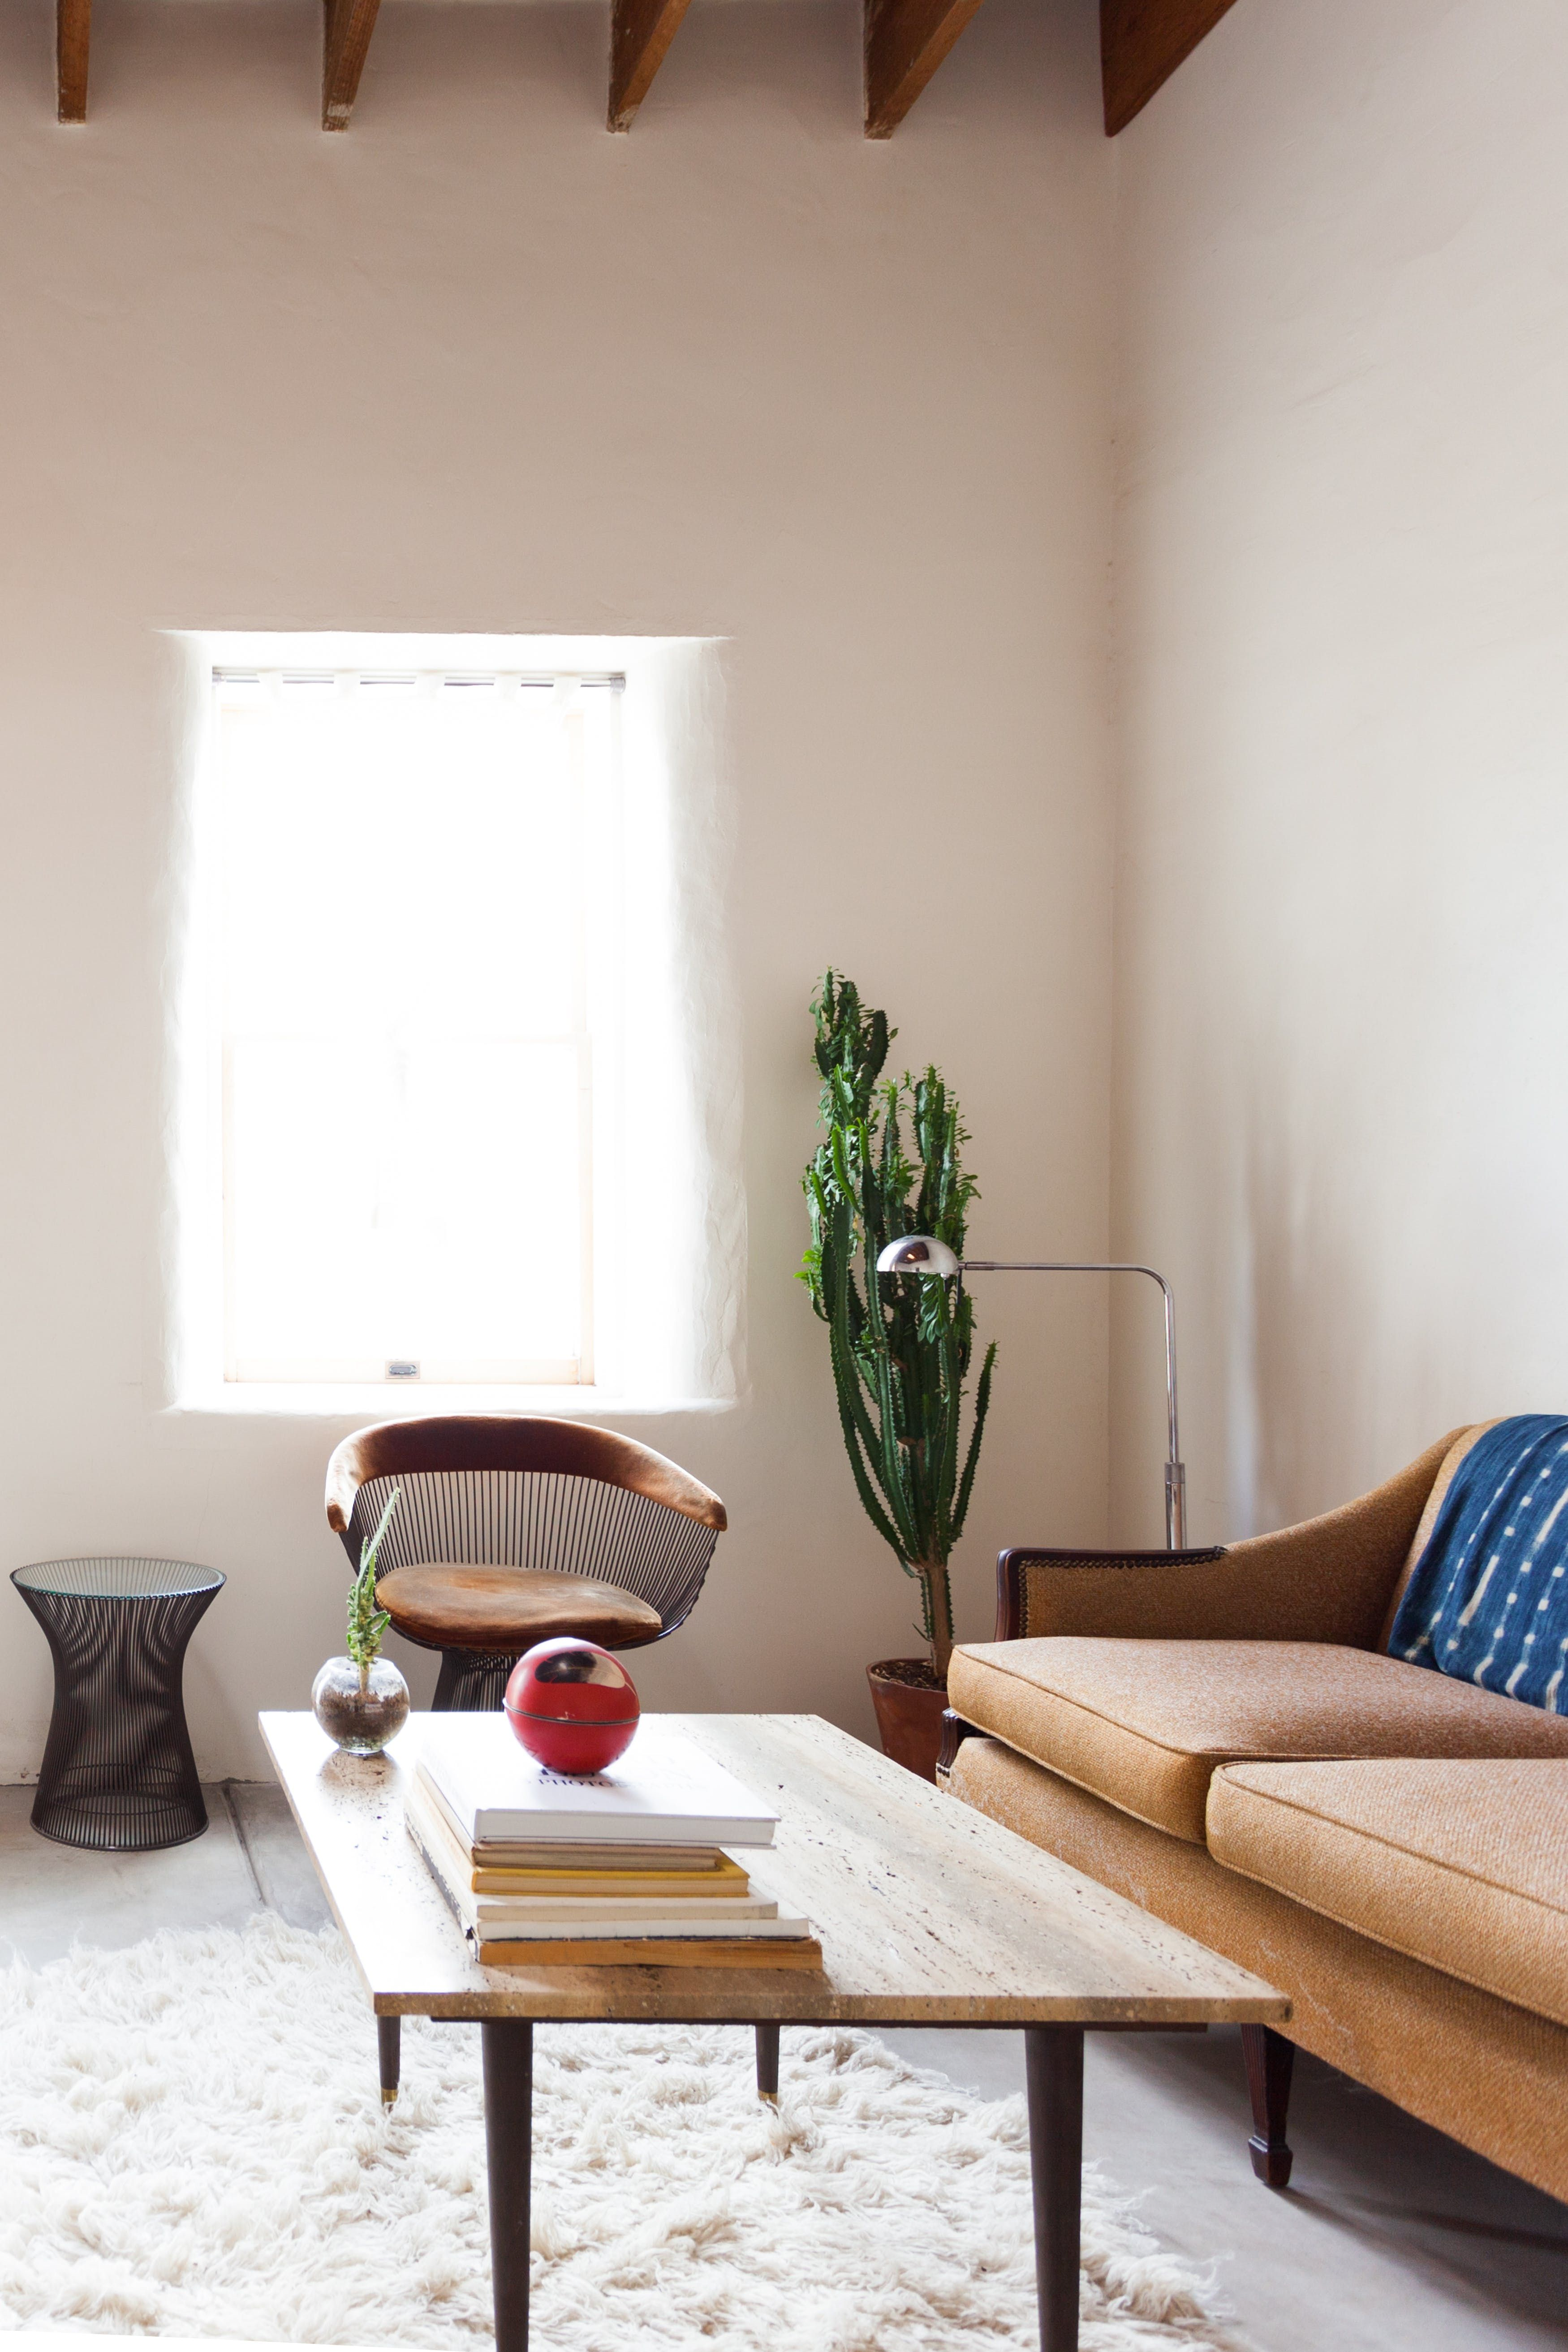 A Desert Minimalist Adobe Home In Tucson Eclectic Bedroom Eclectic Living Room Vintage Minimalist Living Room